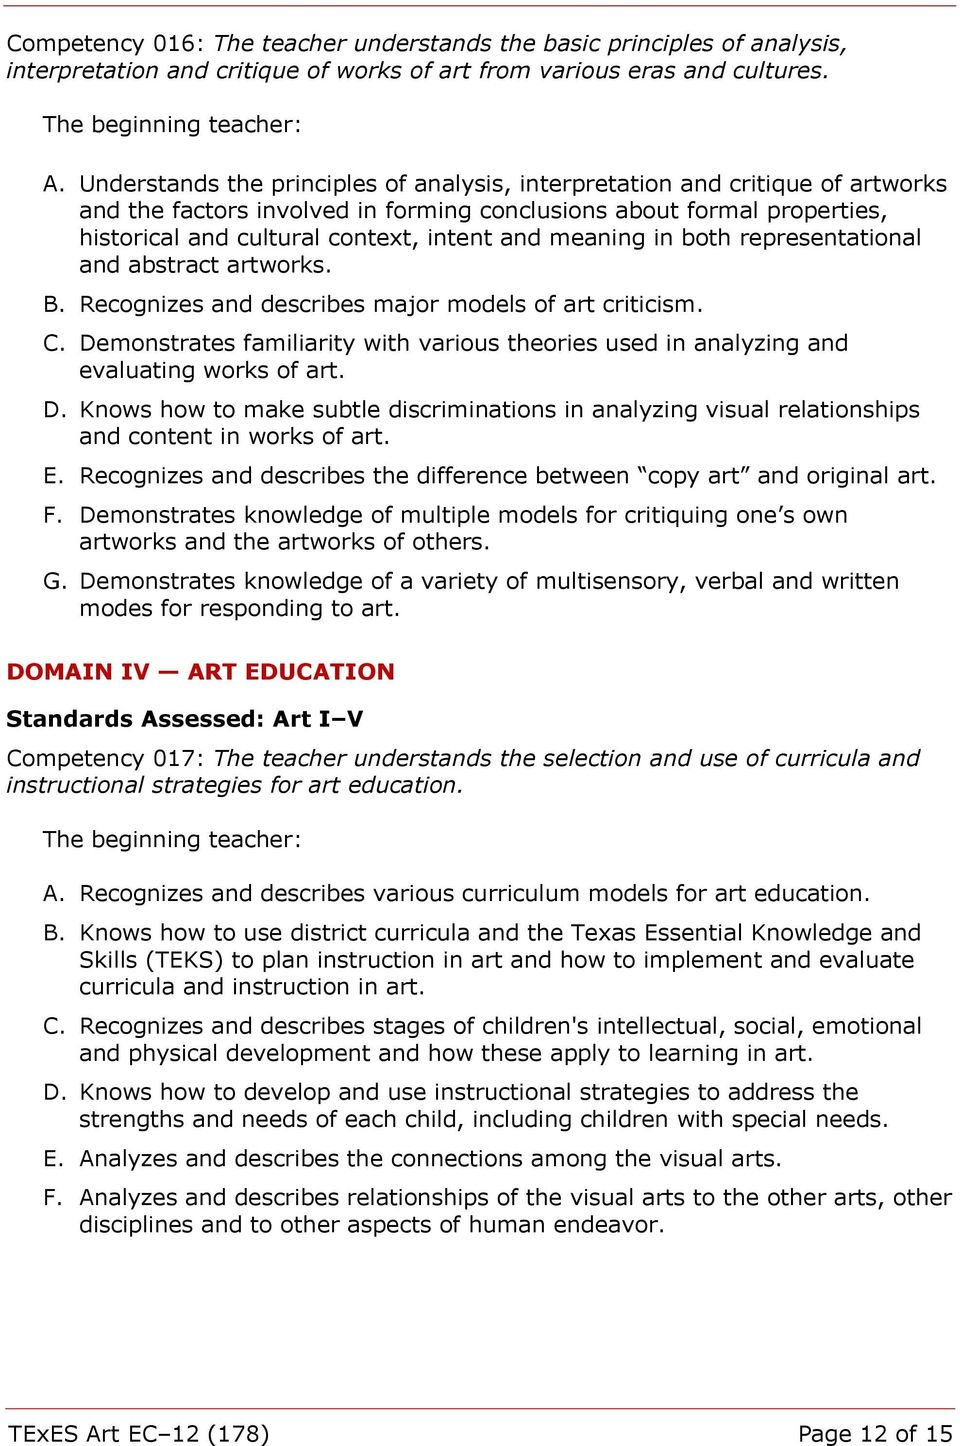 meaning in both representational and abstract artworks. B. Recognizes and describes major models of art criticism. C.